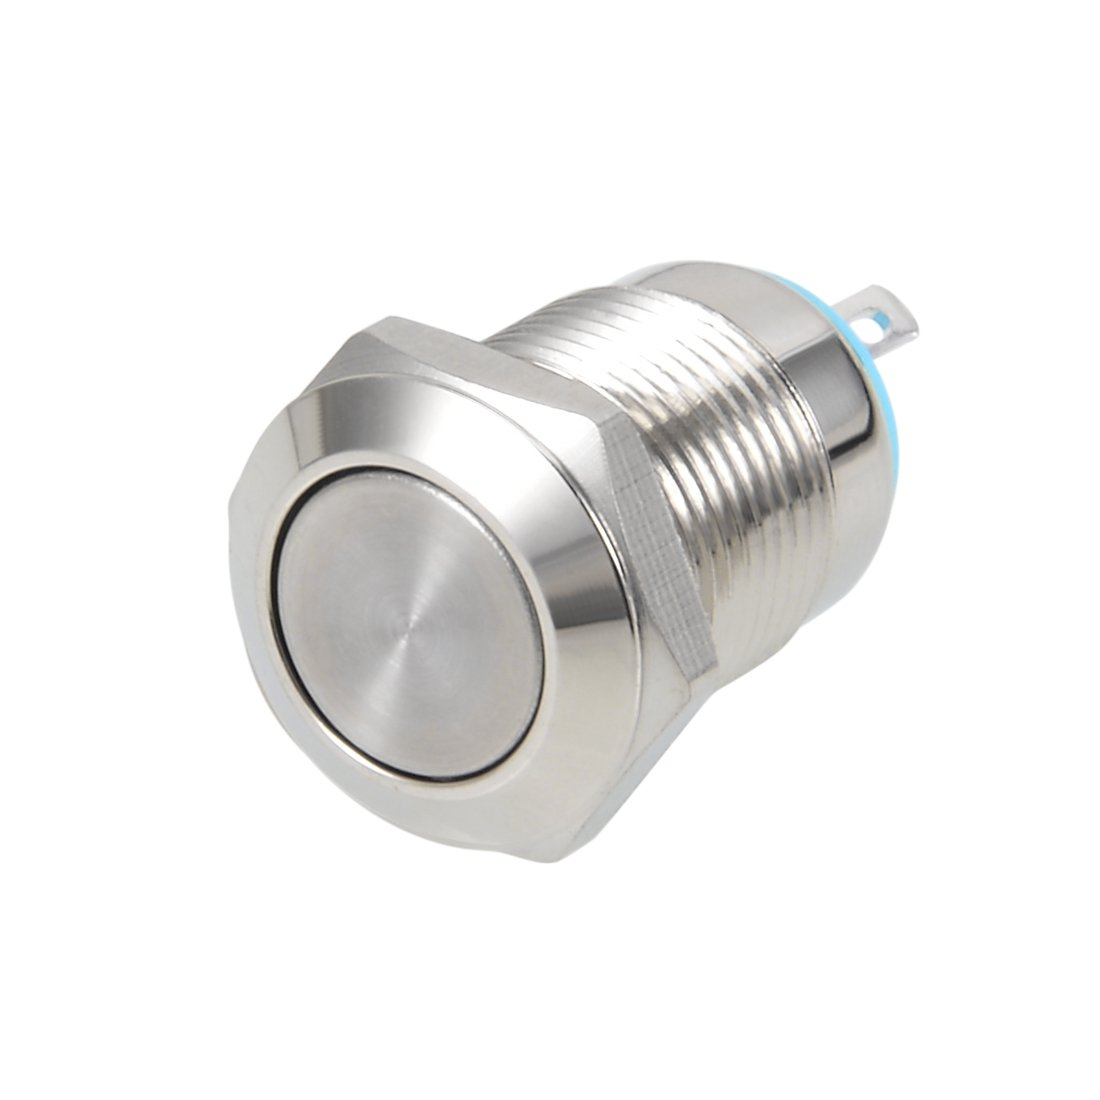 Uxcell Momentary Metal Push Button Switch 12mm Mounting Details About 3a 250v Off On 1 Circuit Latching Dia 2a Spst 1no 2 Terminals Automotive